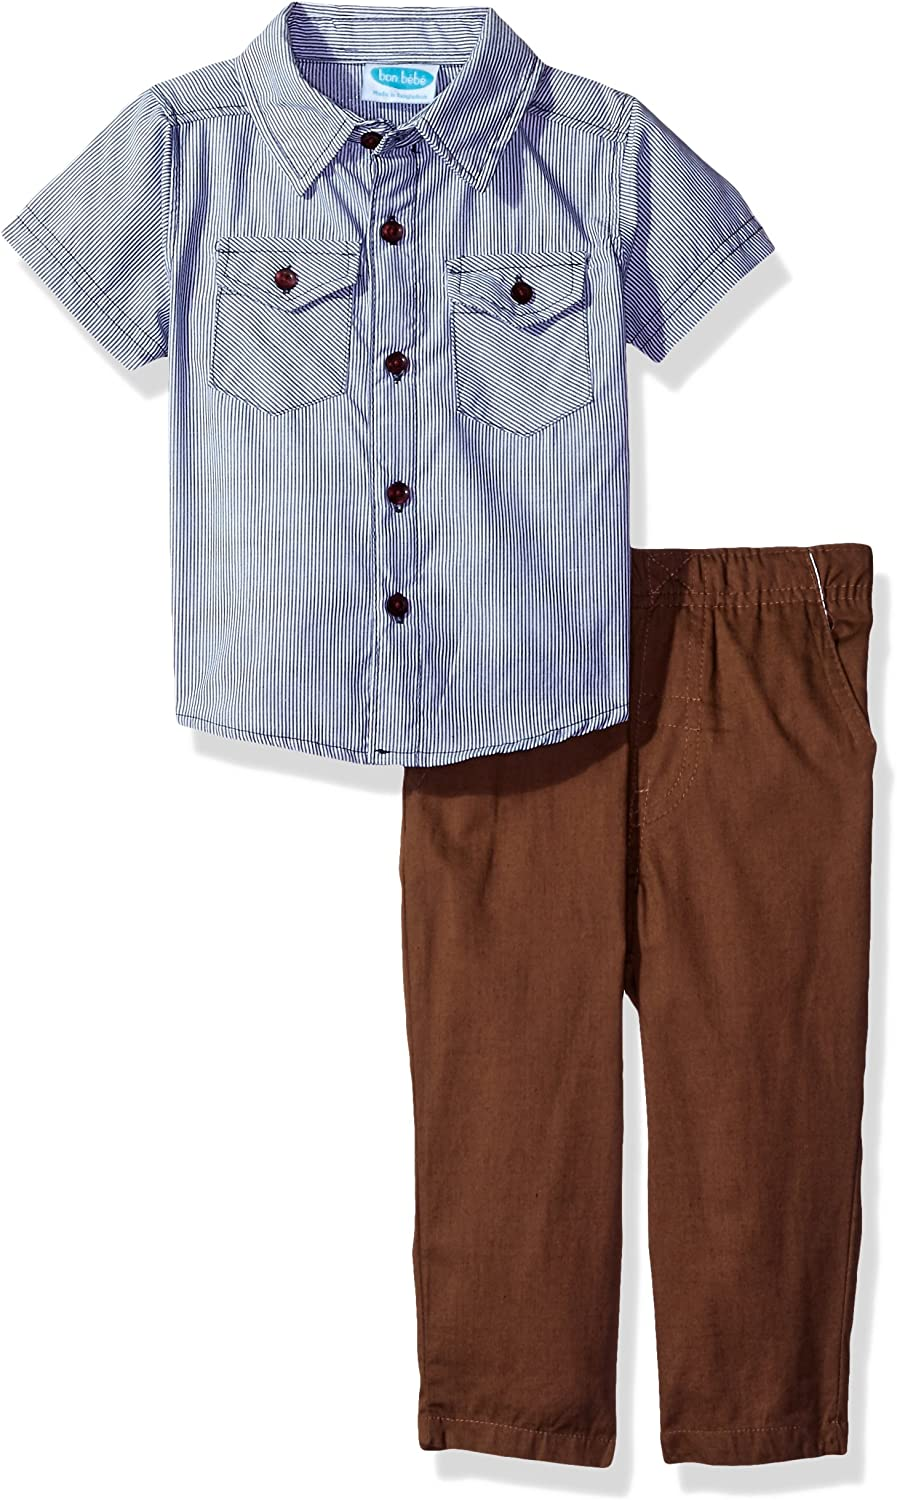 Bon Bebe Baby Boys' 2 Piece Shortsleeve Collared Button Front Shirt with Woven Pant